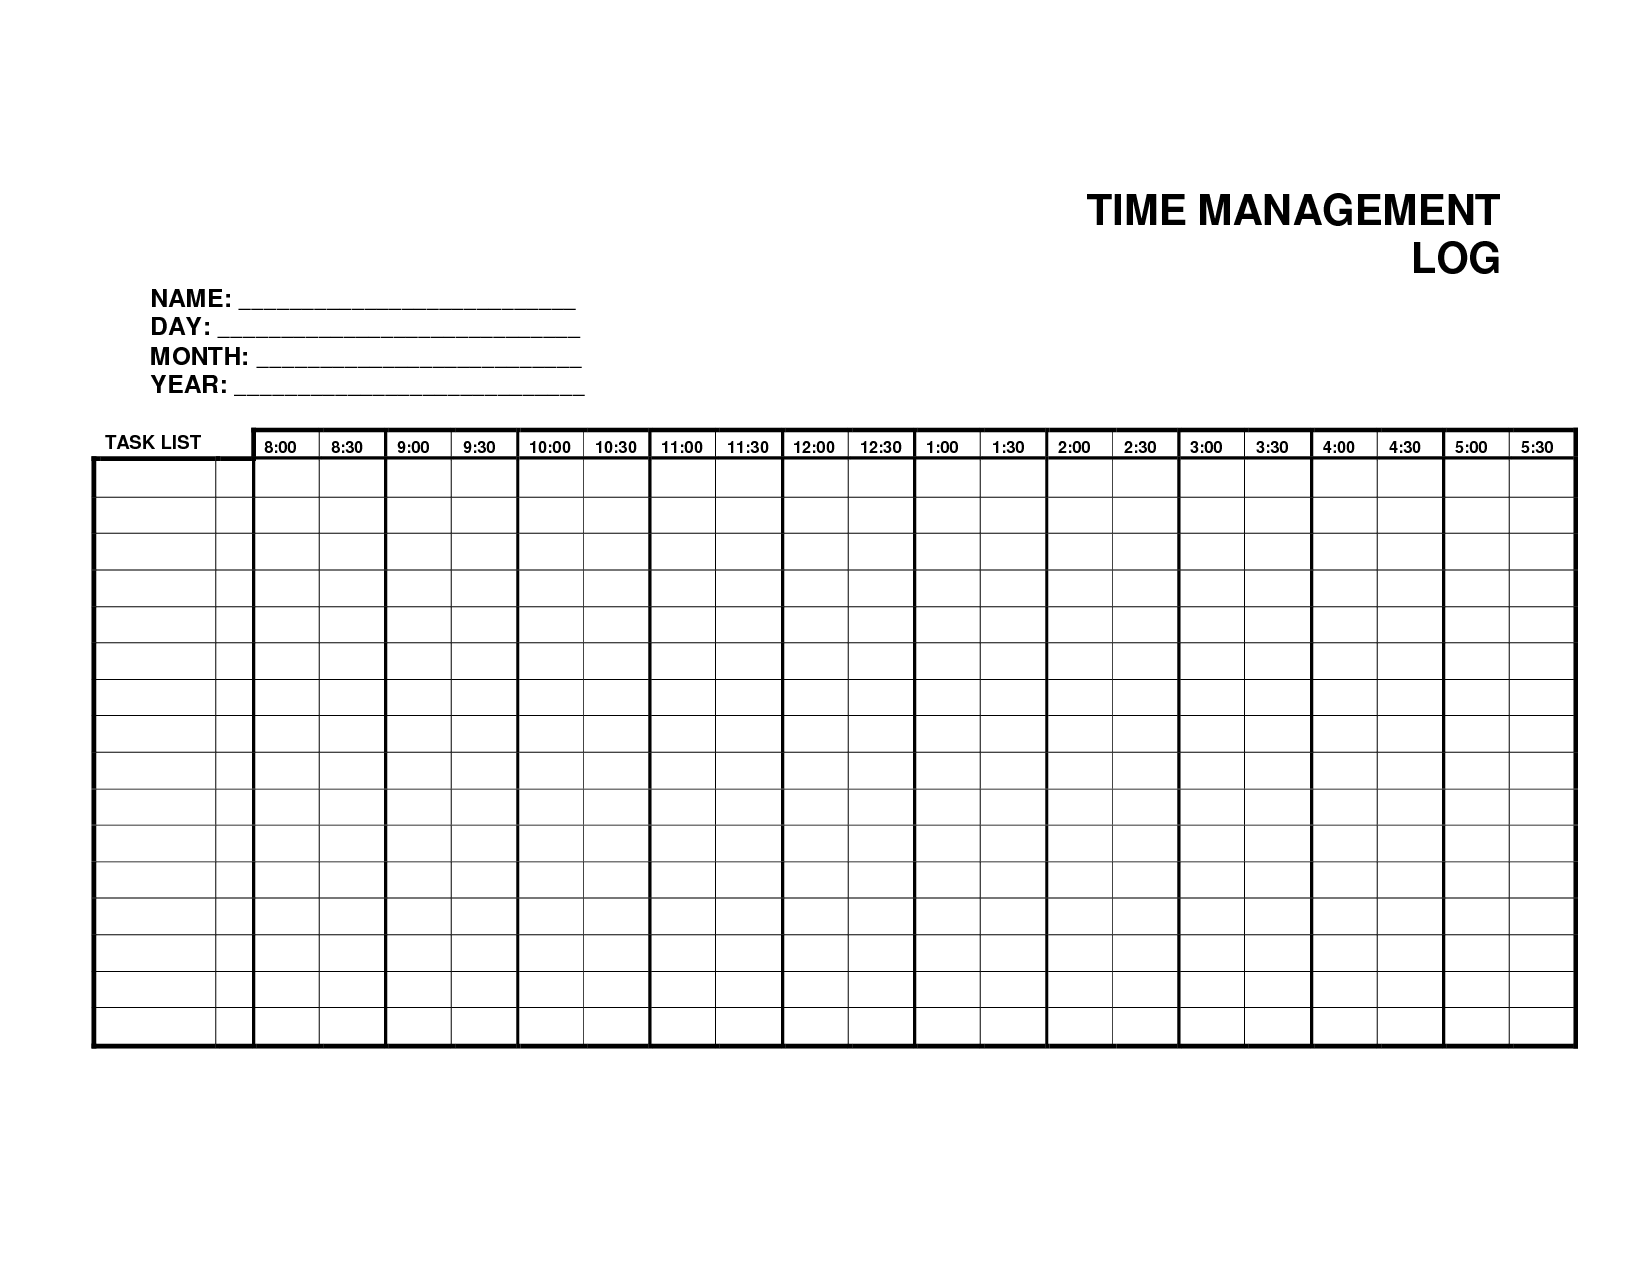 5 Log Sheet Templates